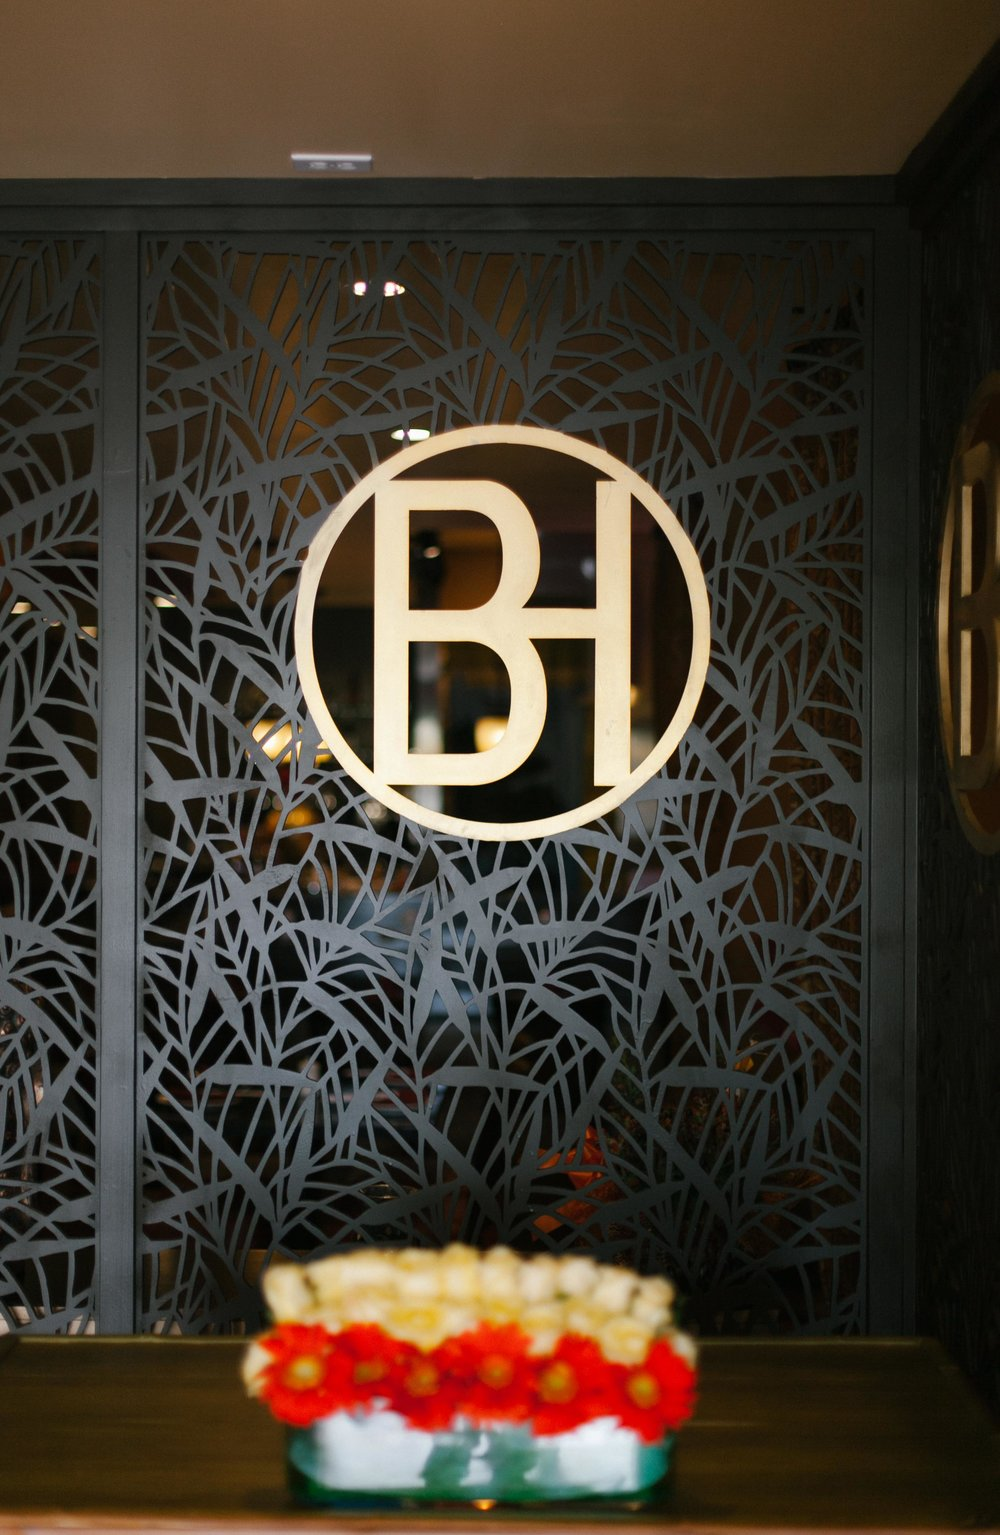 Laser cut wood panel with restaurant logo Bamboo House